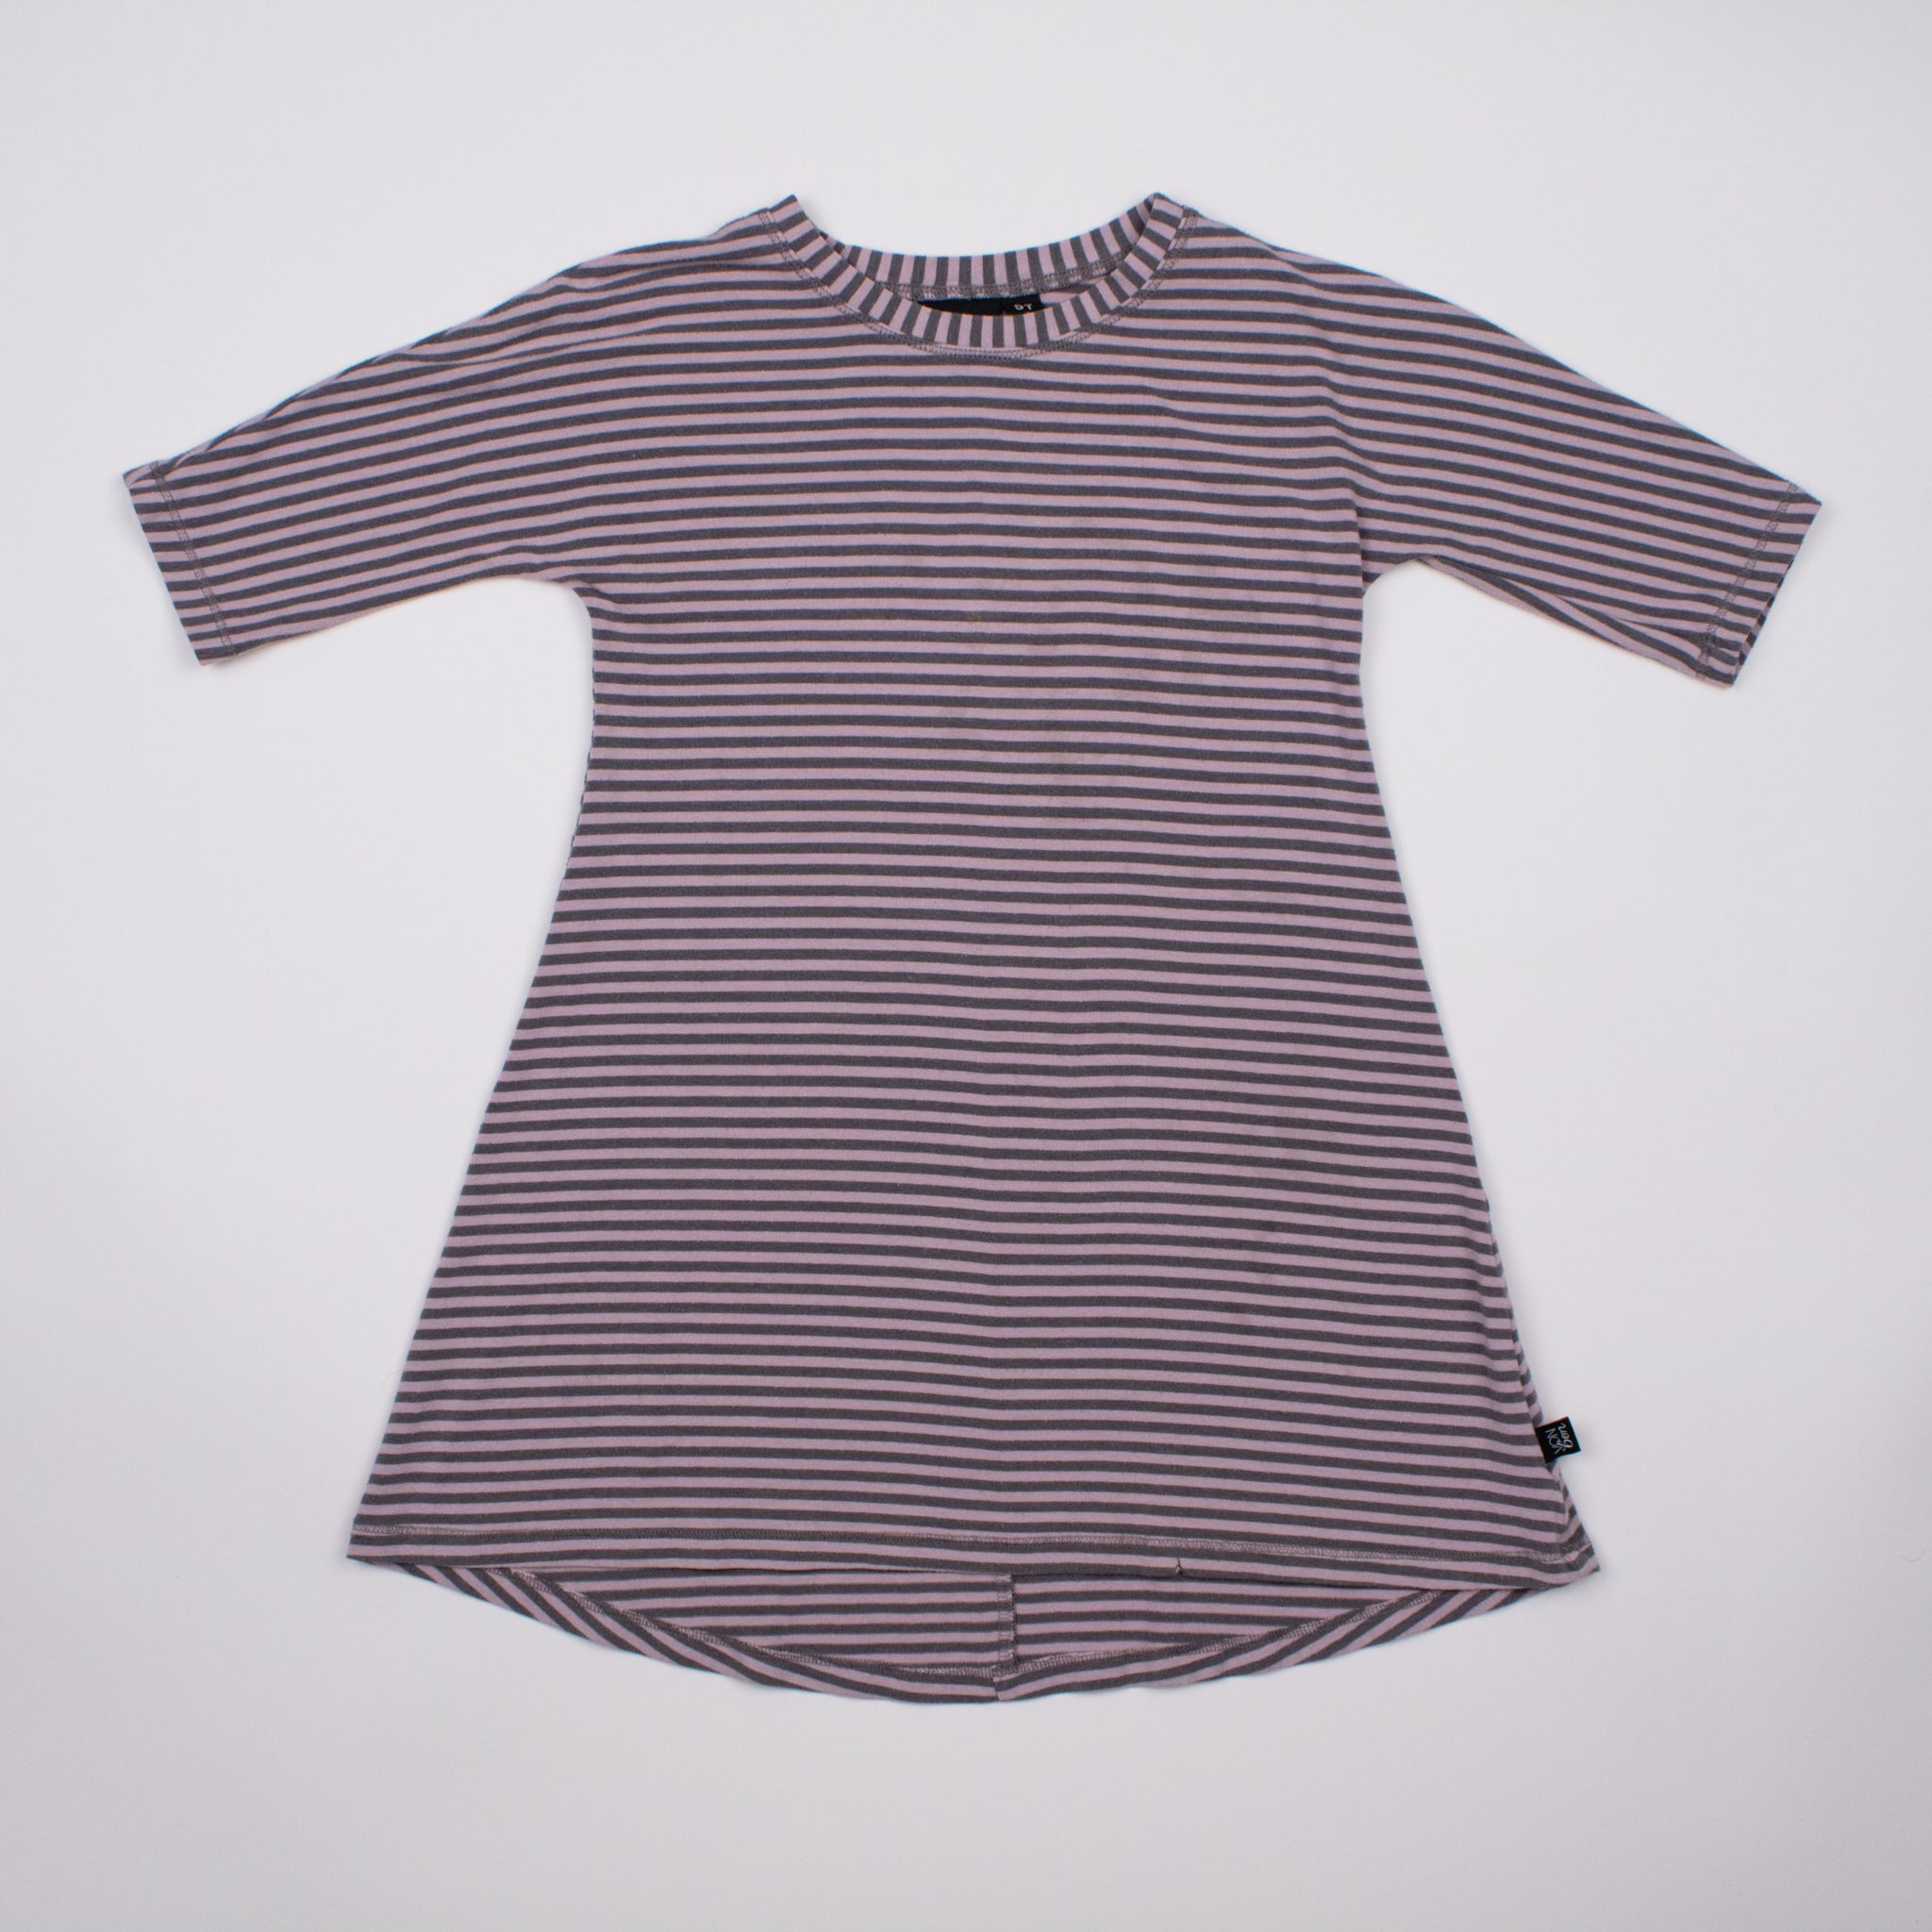 Lilac Stripe 3/4 Sleeve Dress 5-6Y